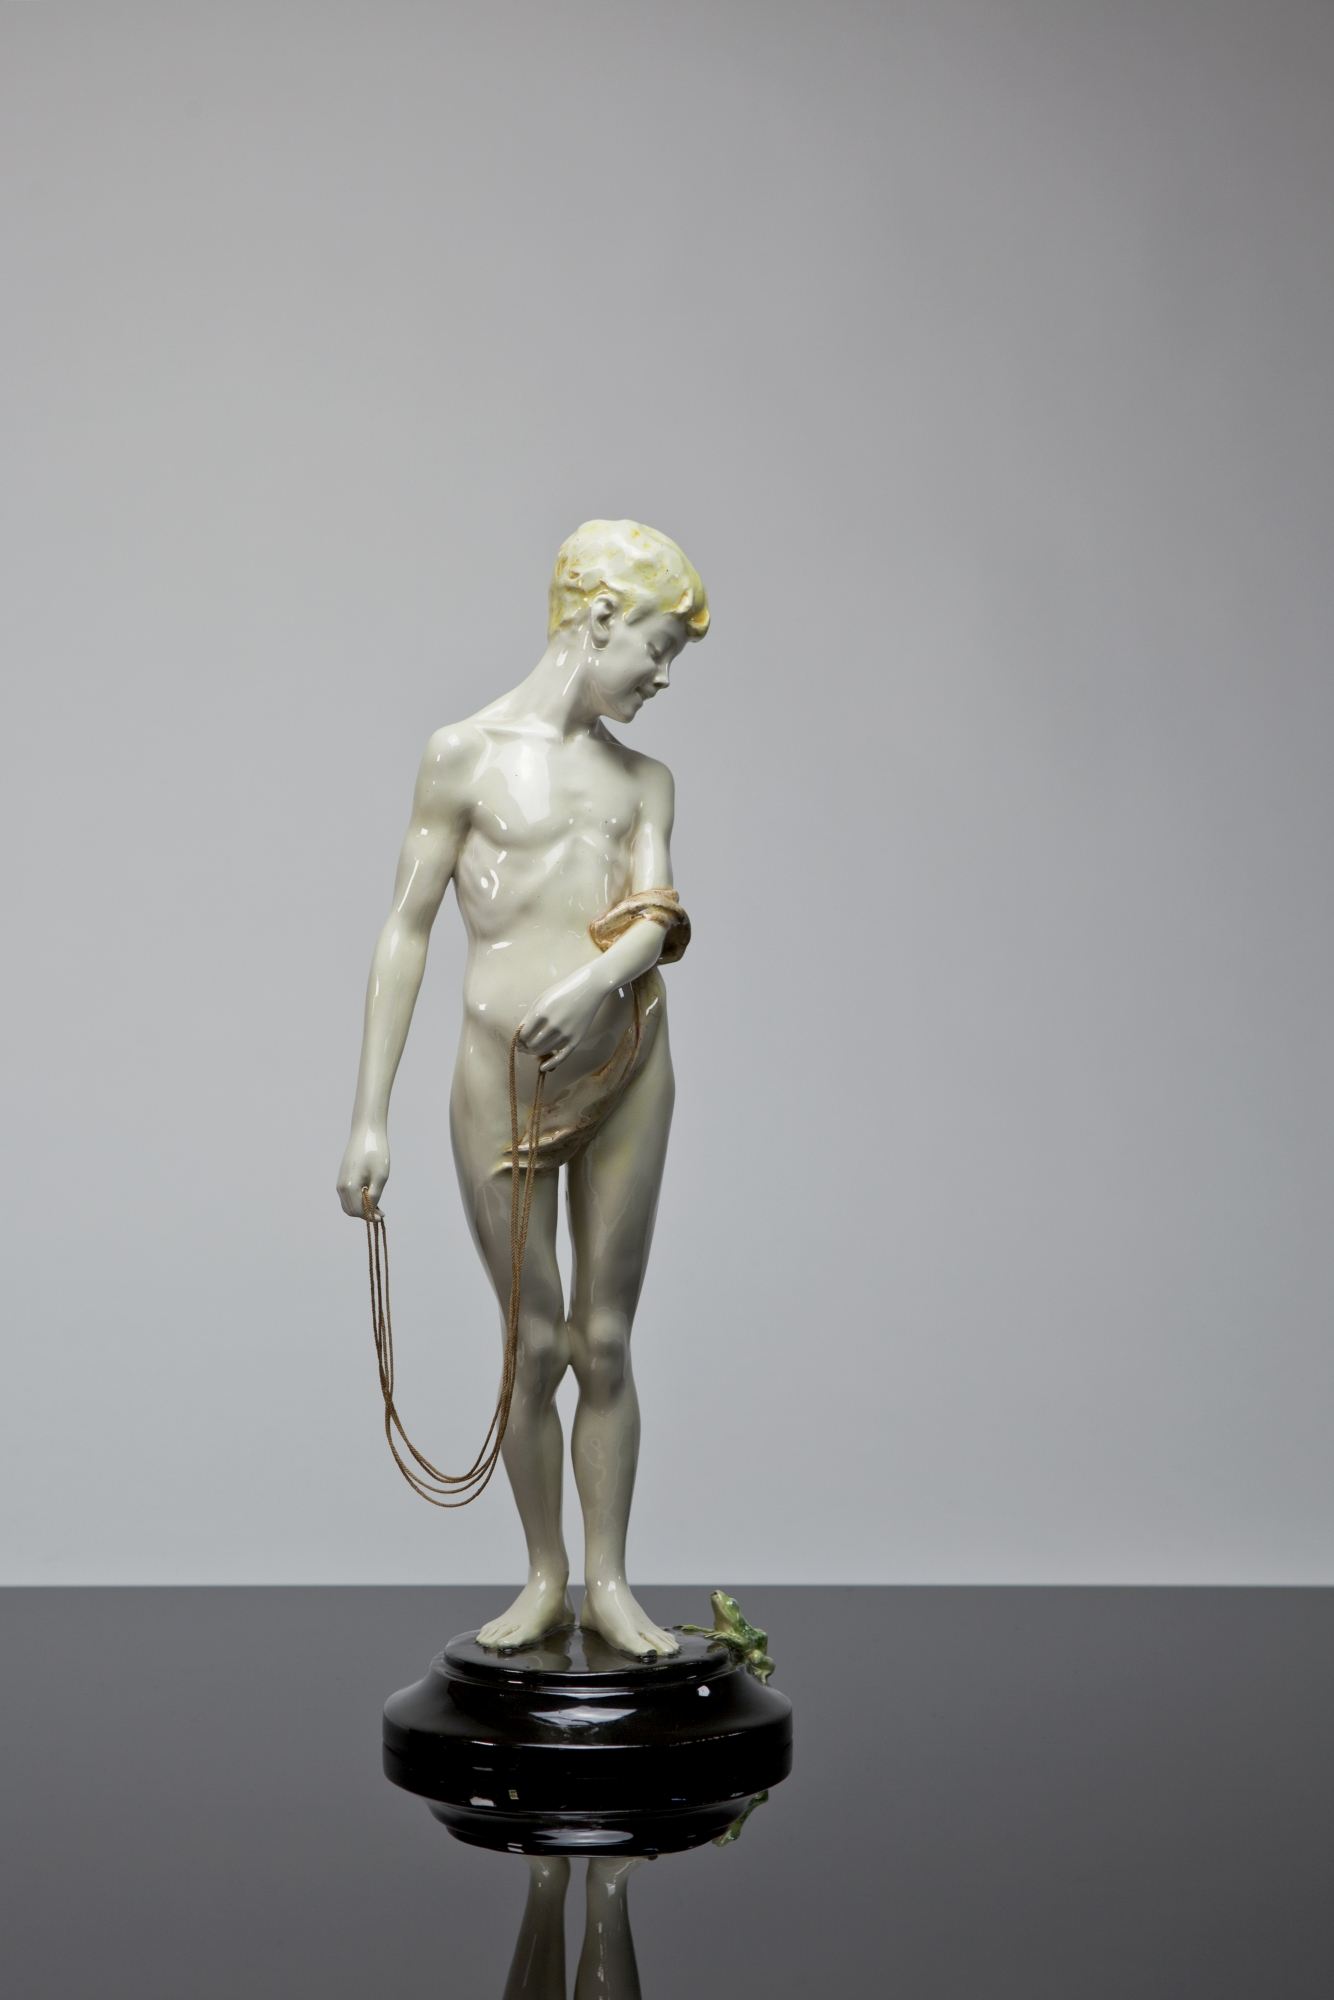 Toon Dupuis Art Nouveau Sculpture Of A Boy With Skipping Rope Body Skip Design 1904 1907 Execution Voorheen Amstelhoek 1910 Kunstconsult